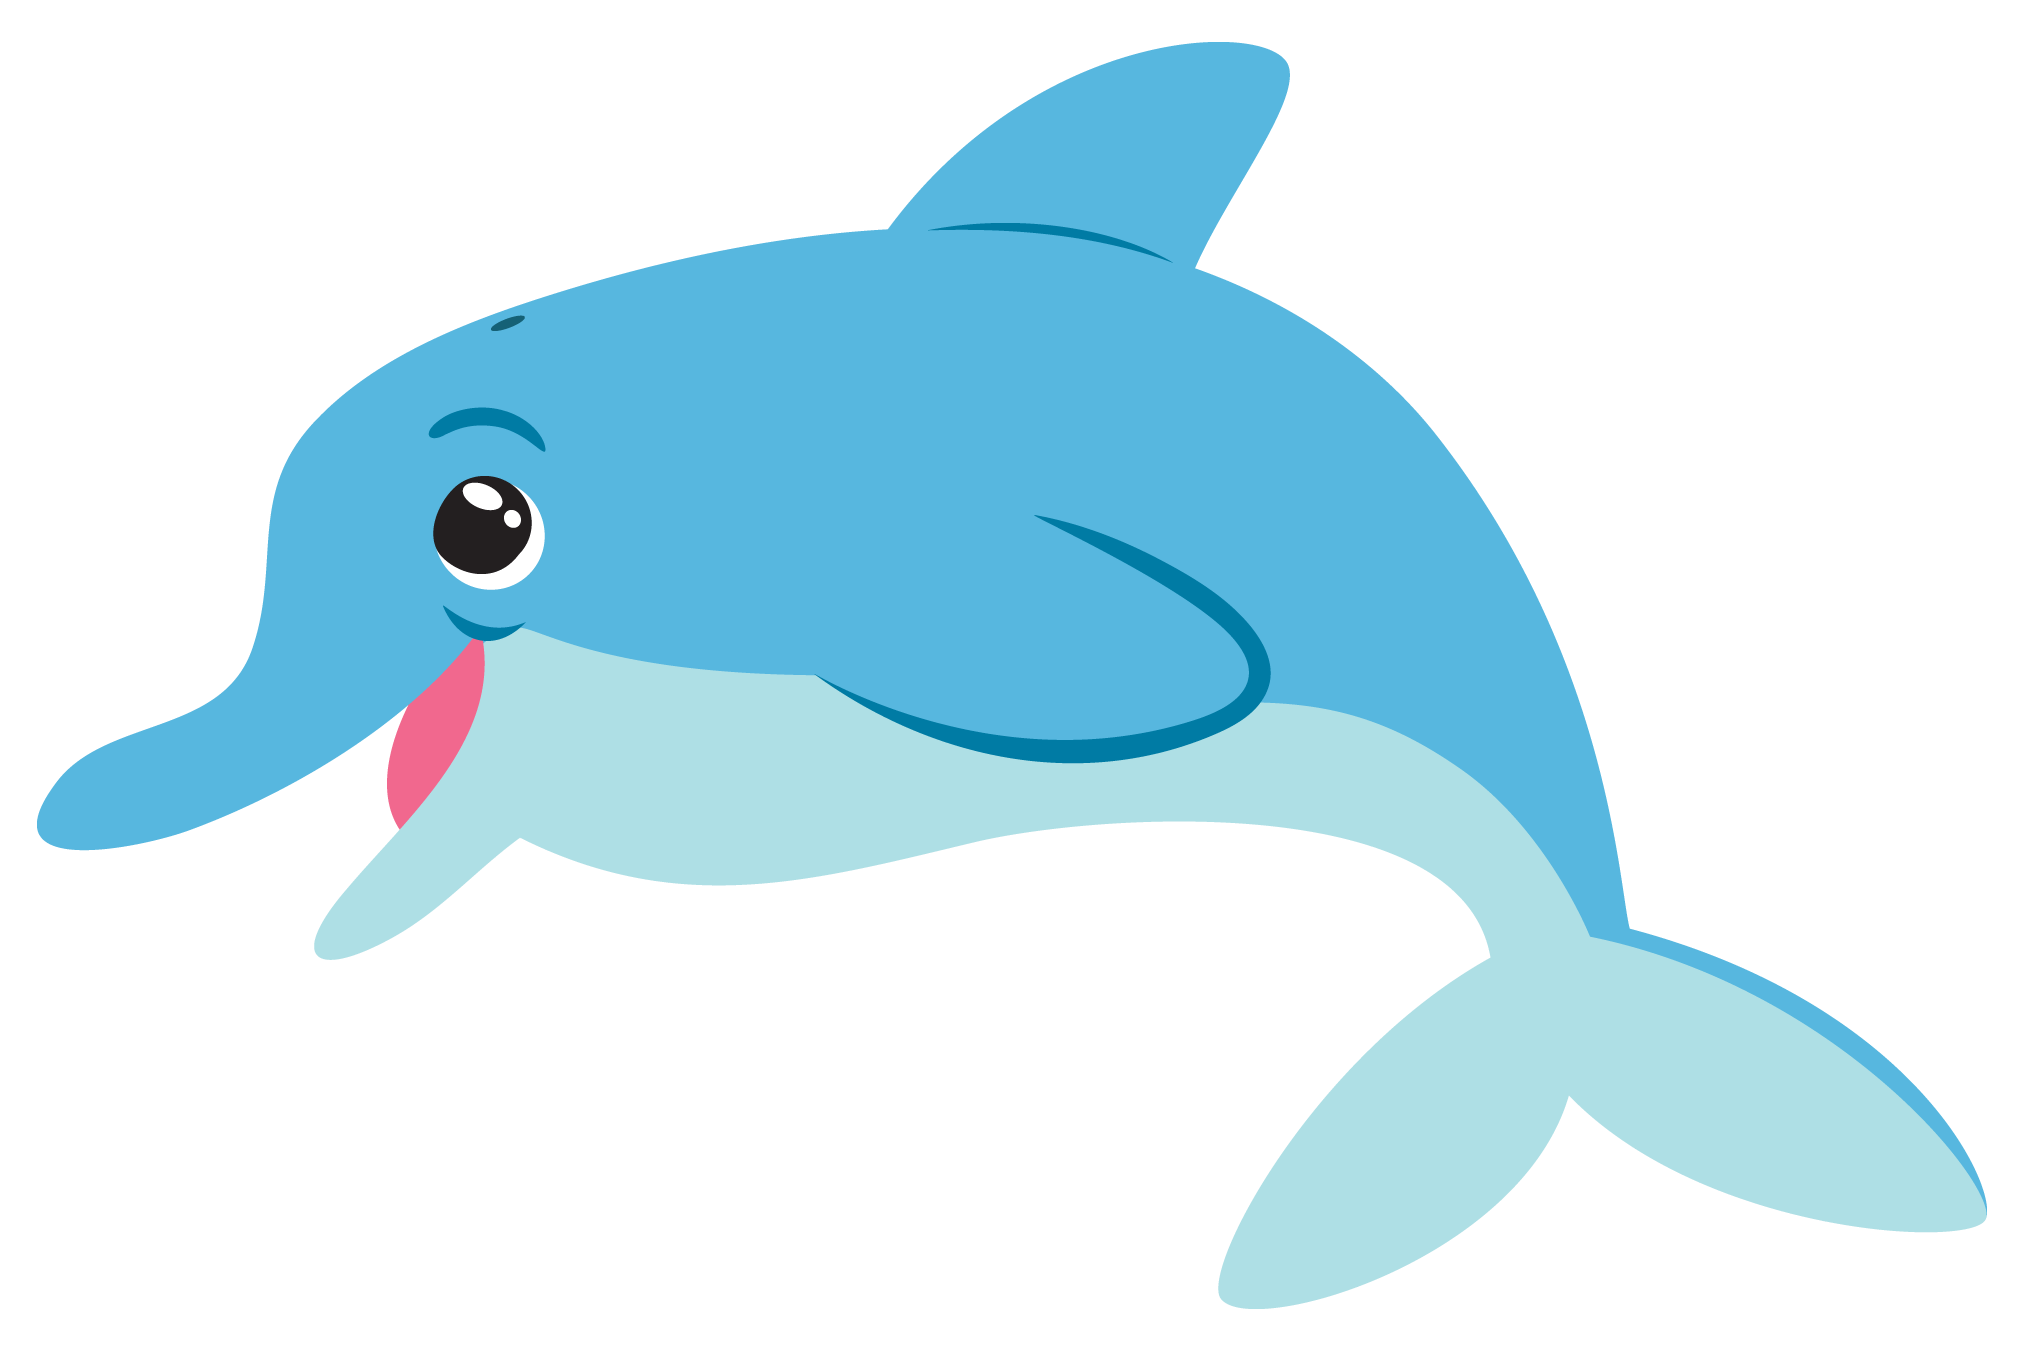 dolphin clipart for kids at getdrawings com free for personal use rh getdrawings com dolphins clipart images dolphin clip art free download